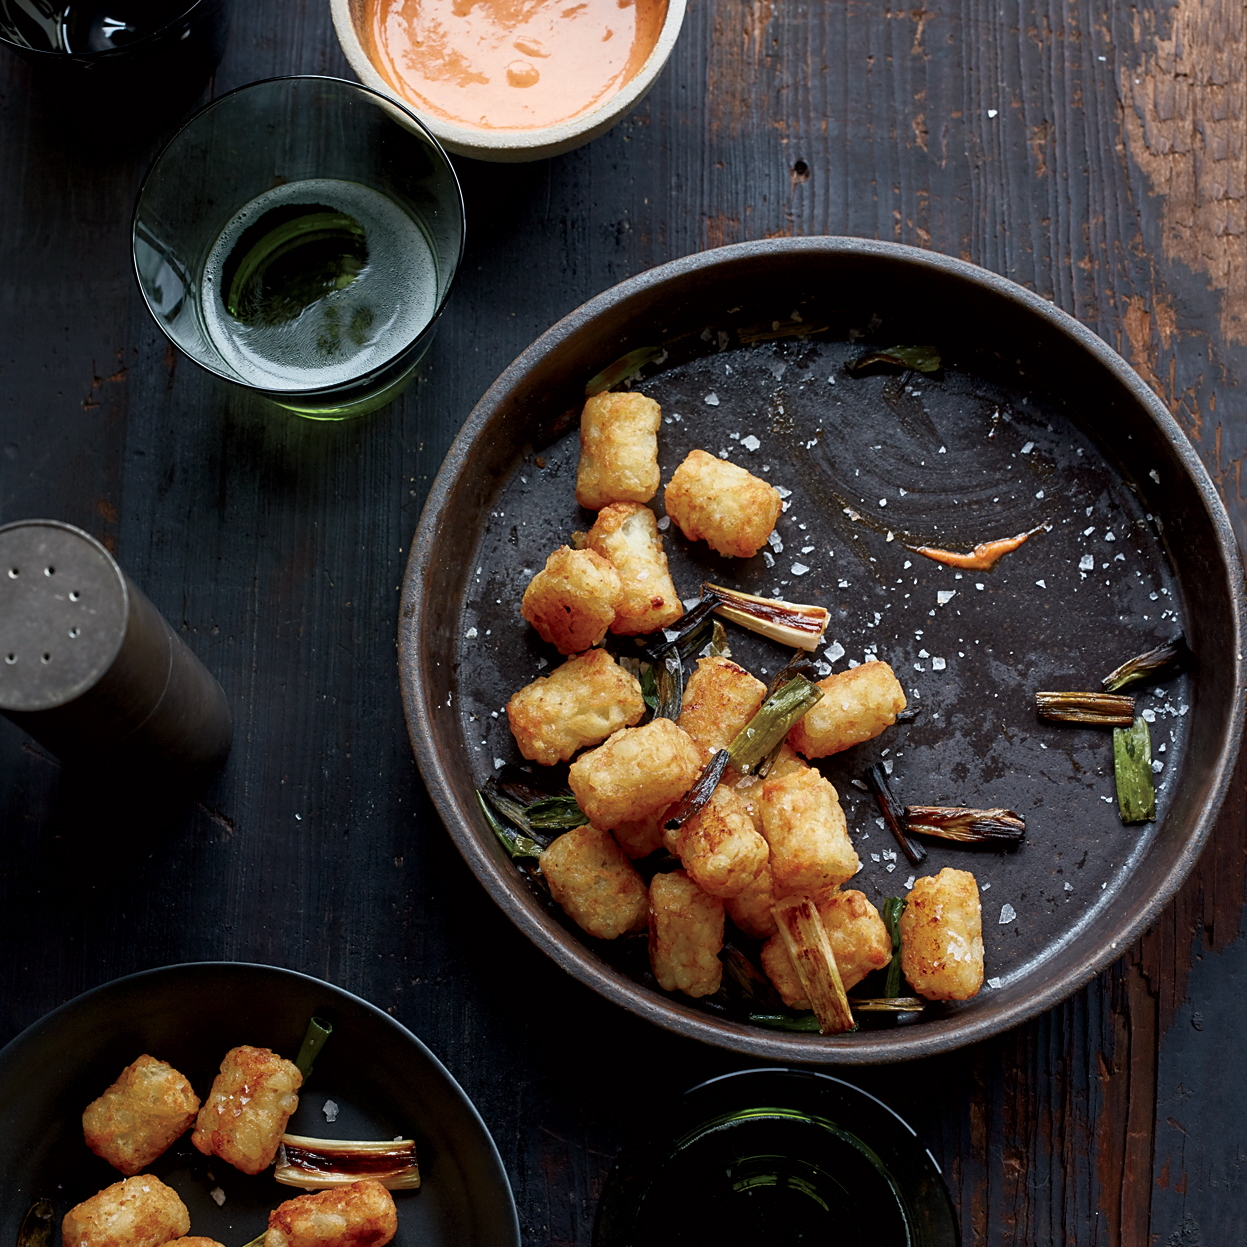 Tater Tots with Spicy Aiolil